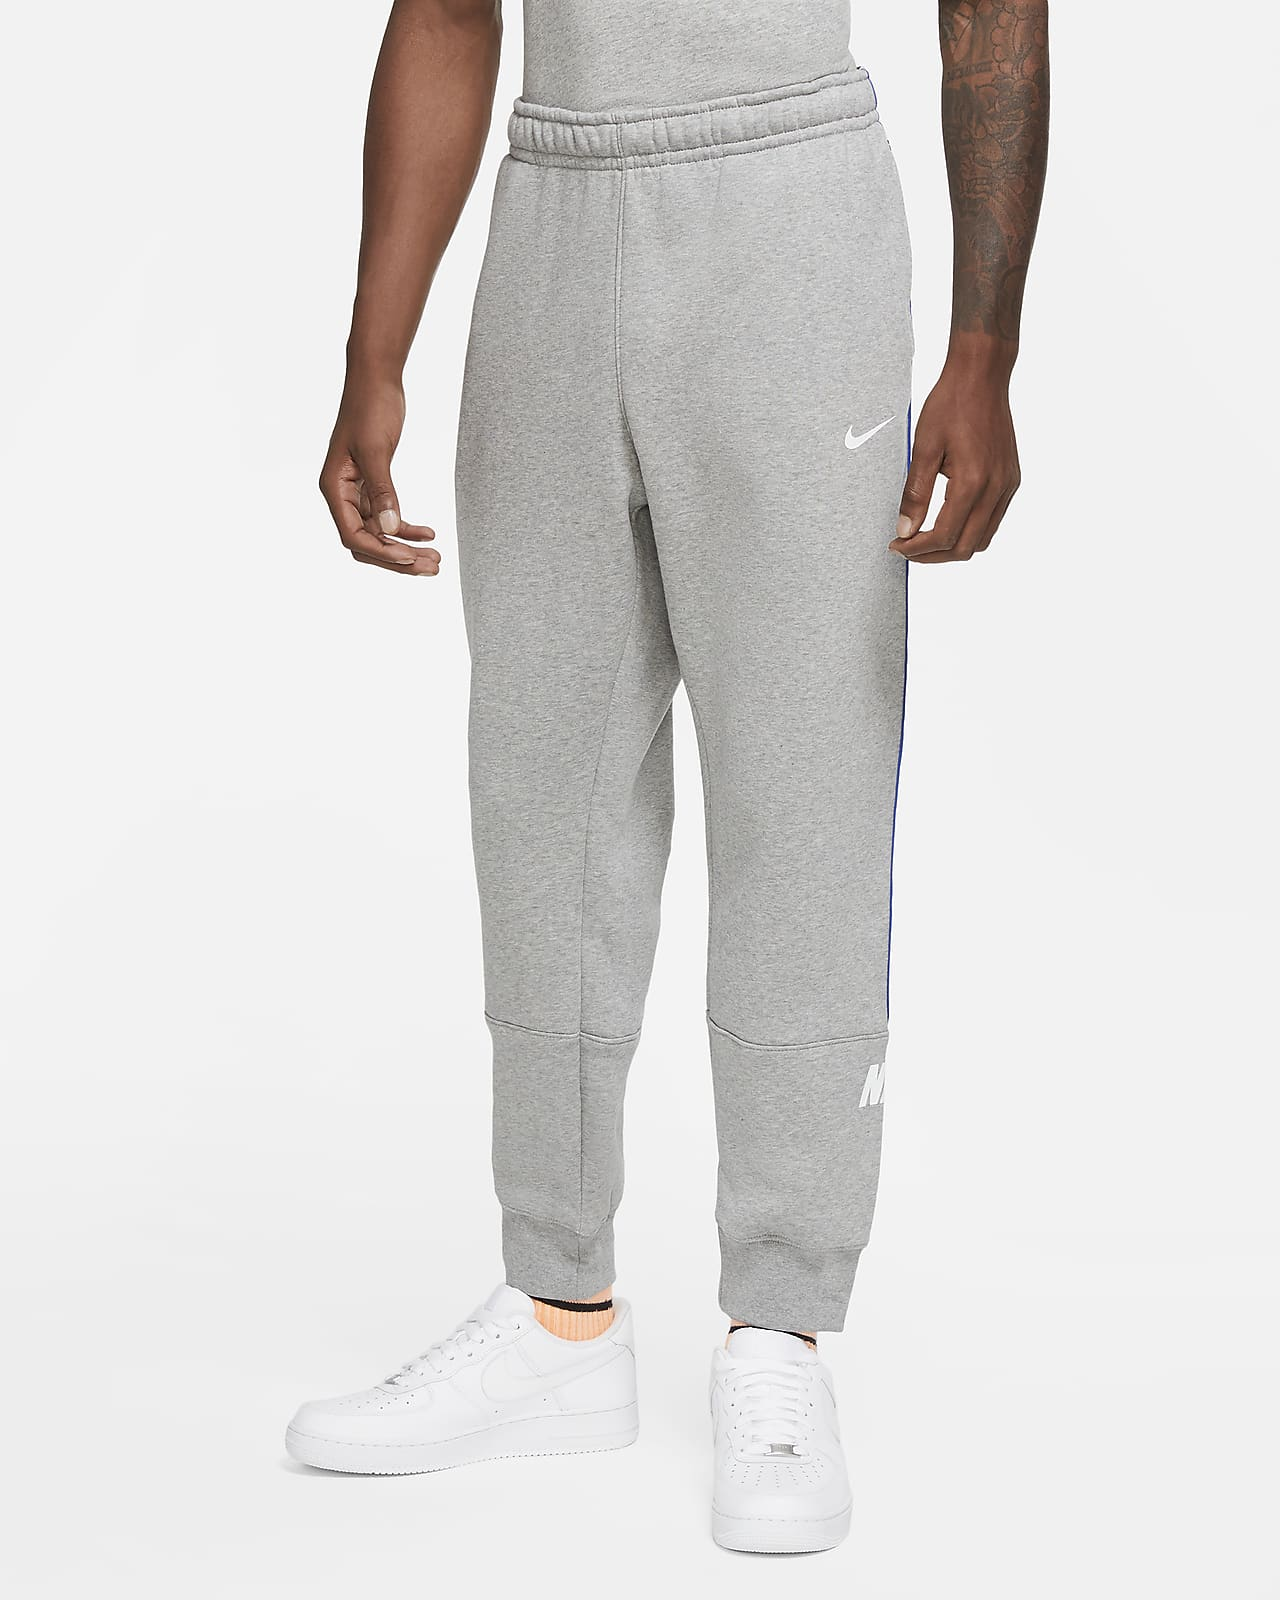 Nike Sportswear Joggingbroek van fleece voor heren